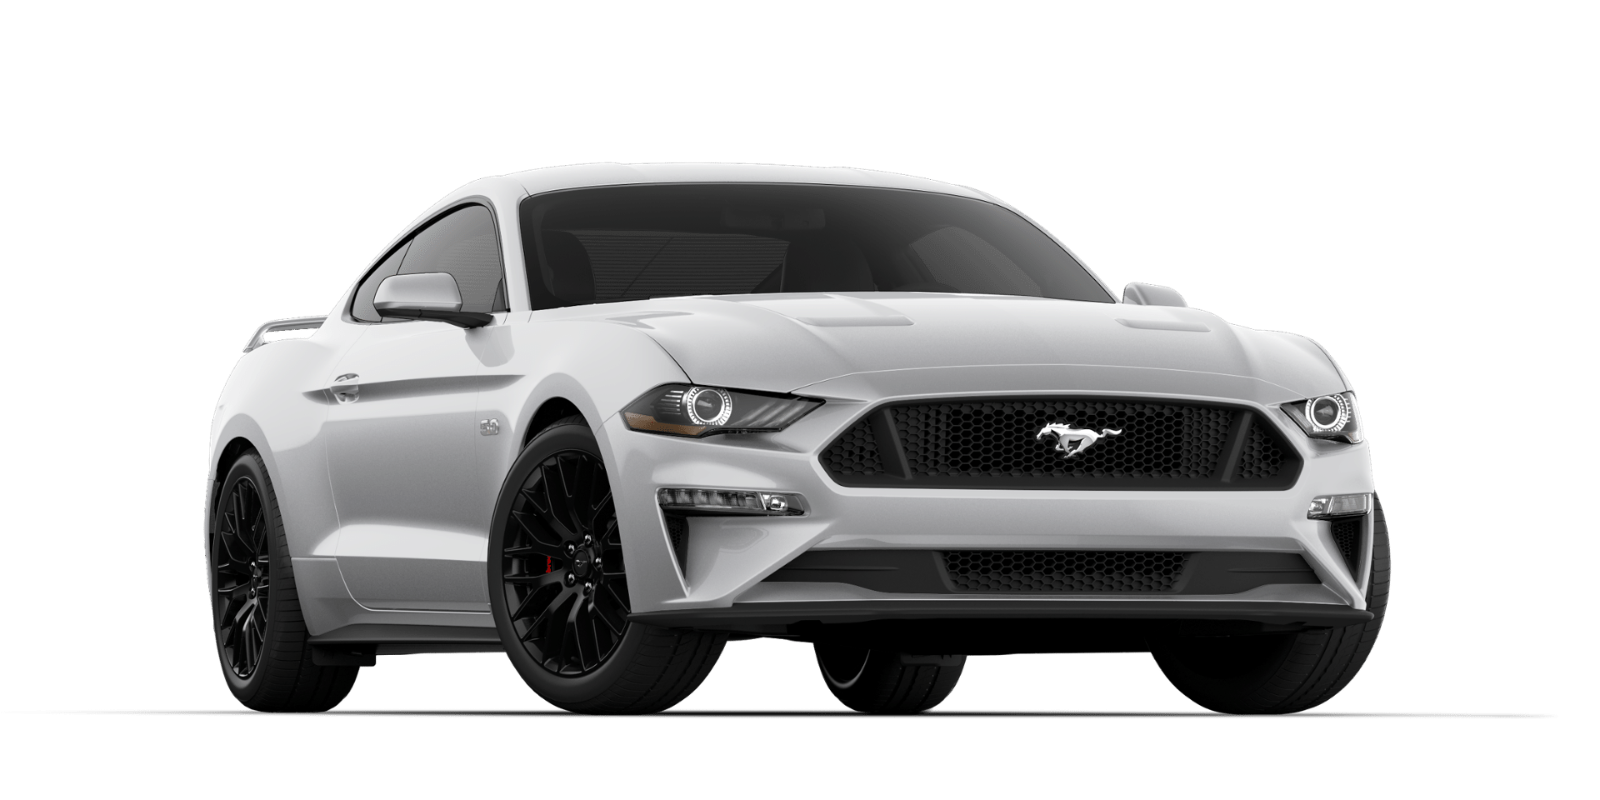 Cool Amazing 2018 Ford Mustang New 2018 Mustang Gt Ecoboost Special Order Build It To Your Specs Options 2017 2018 2018 Mustang Gt Mustang Ford Mustang